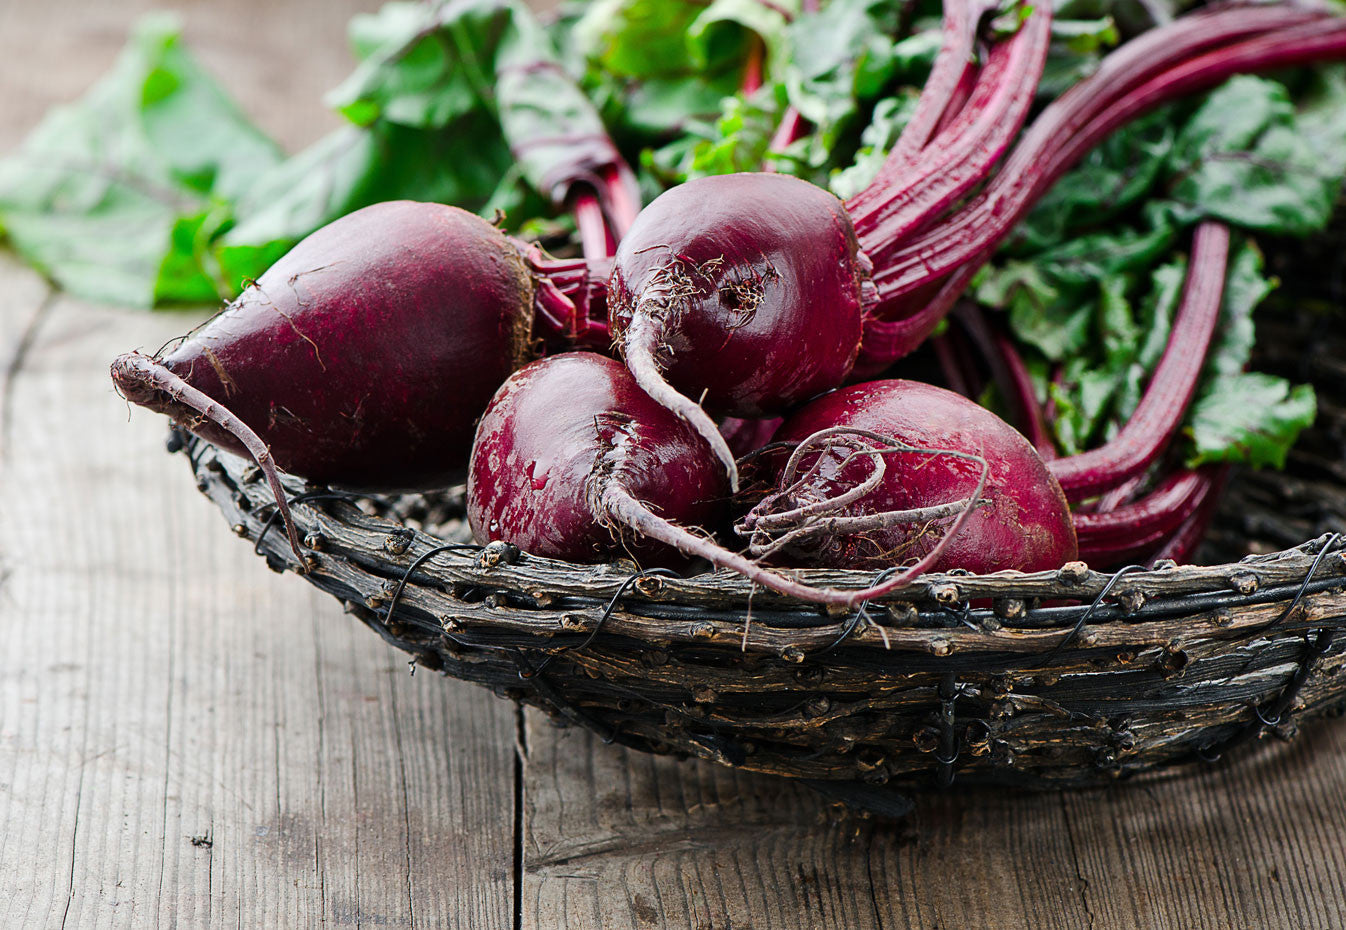 Recipes Easiest Steamed Beets and Red Beet and Feta Salad Gaiam